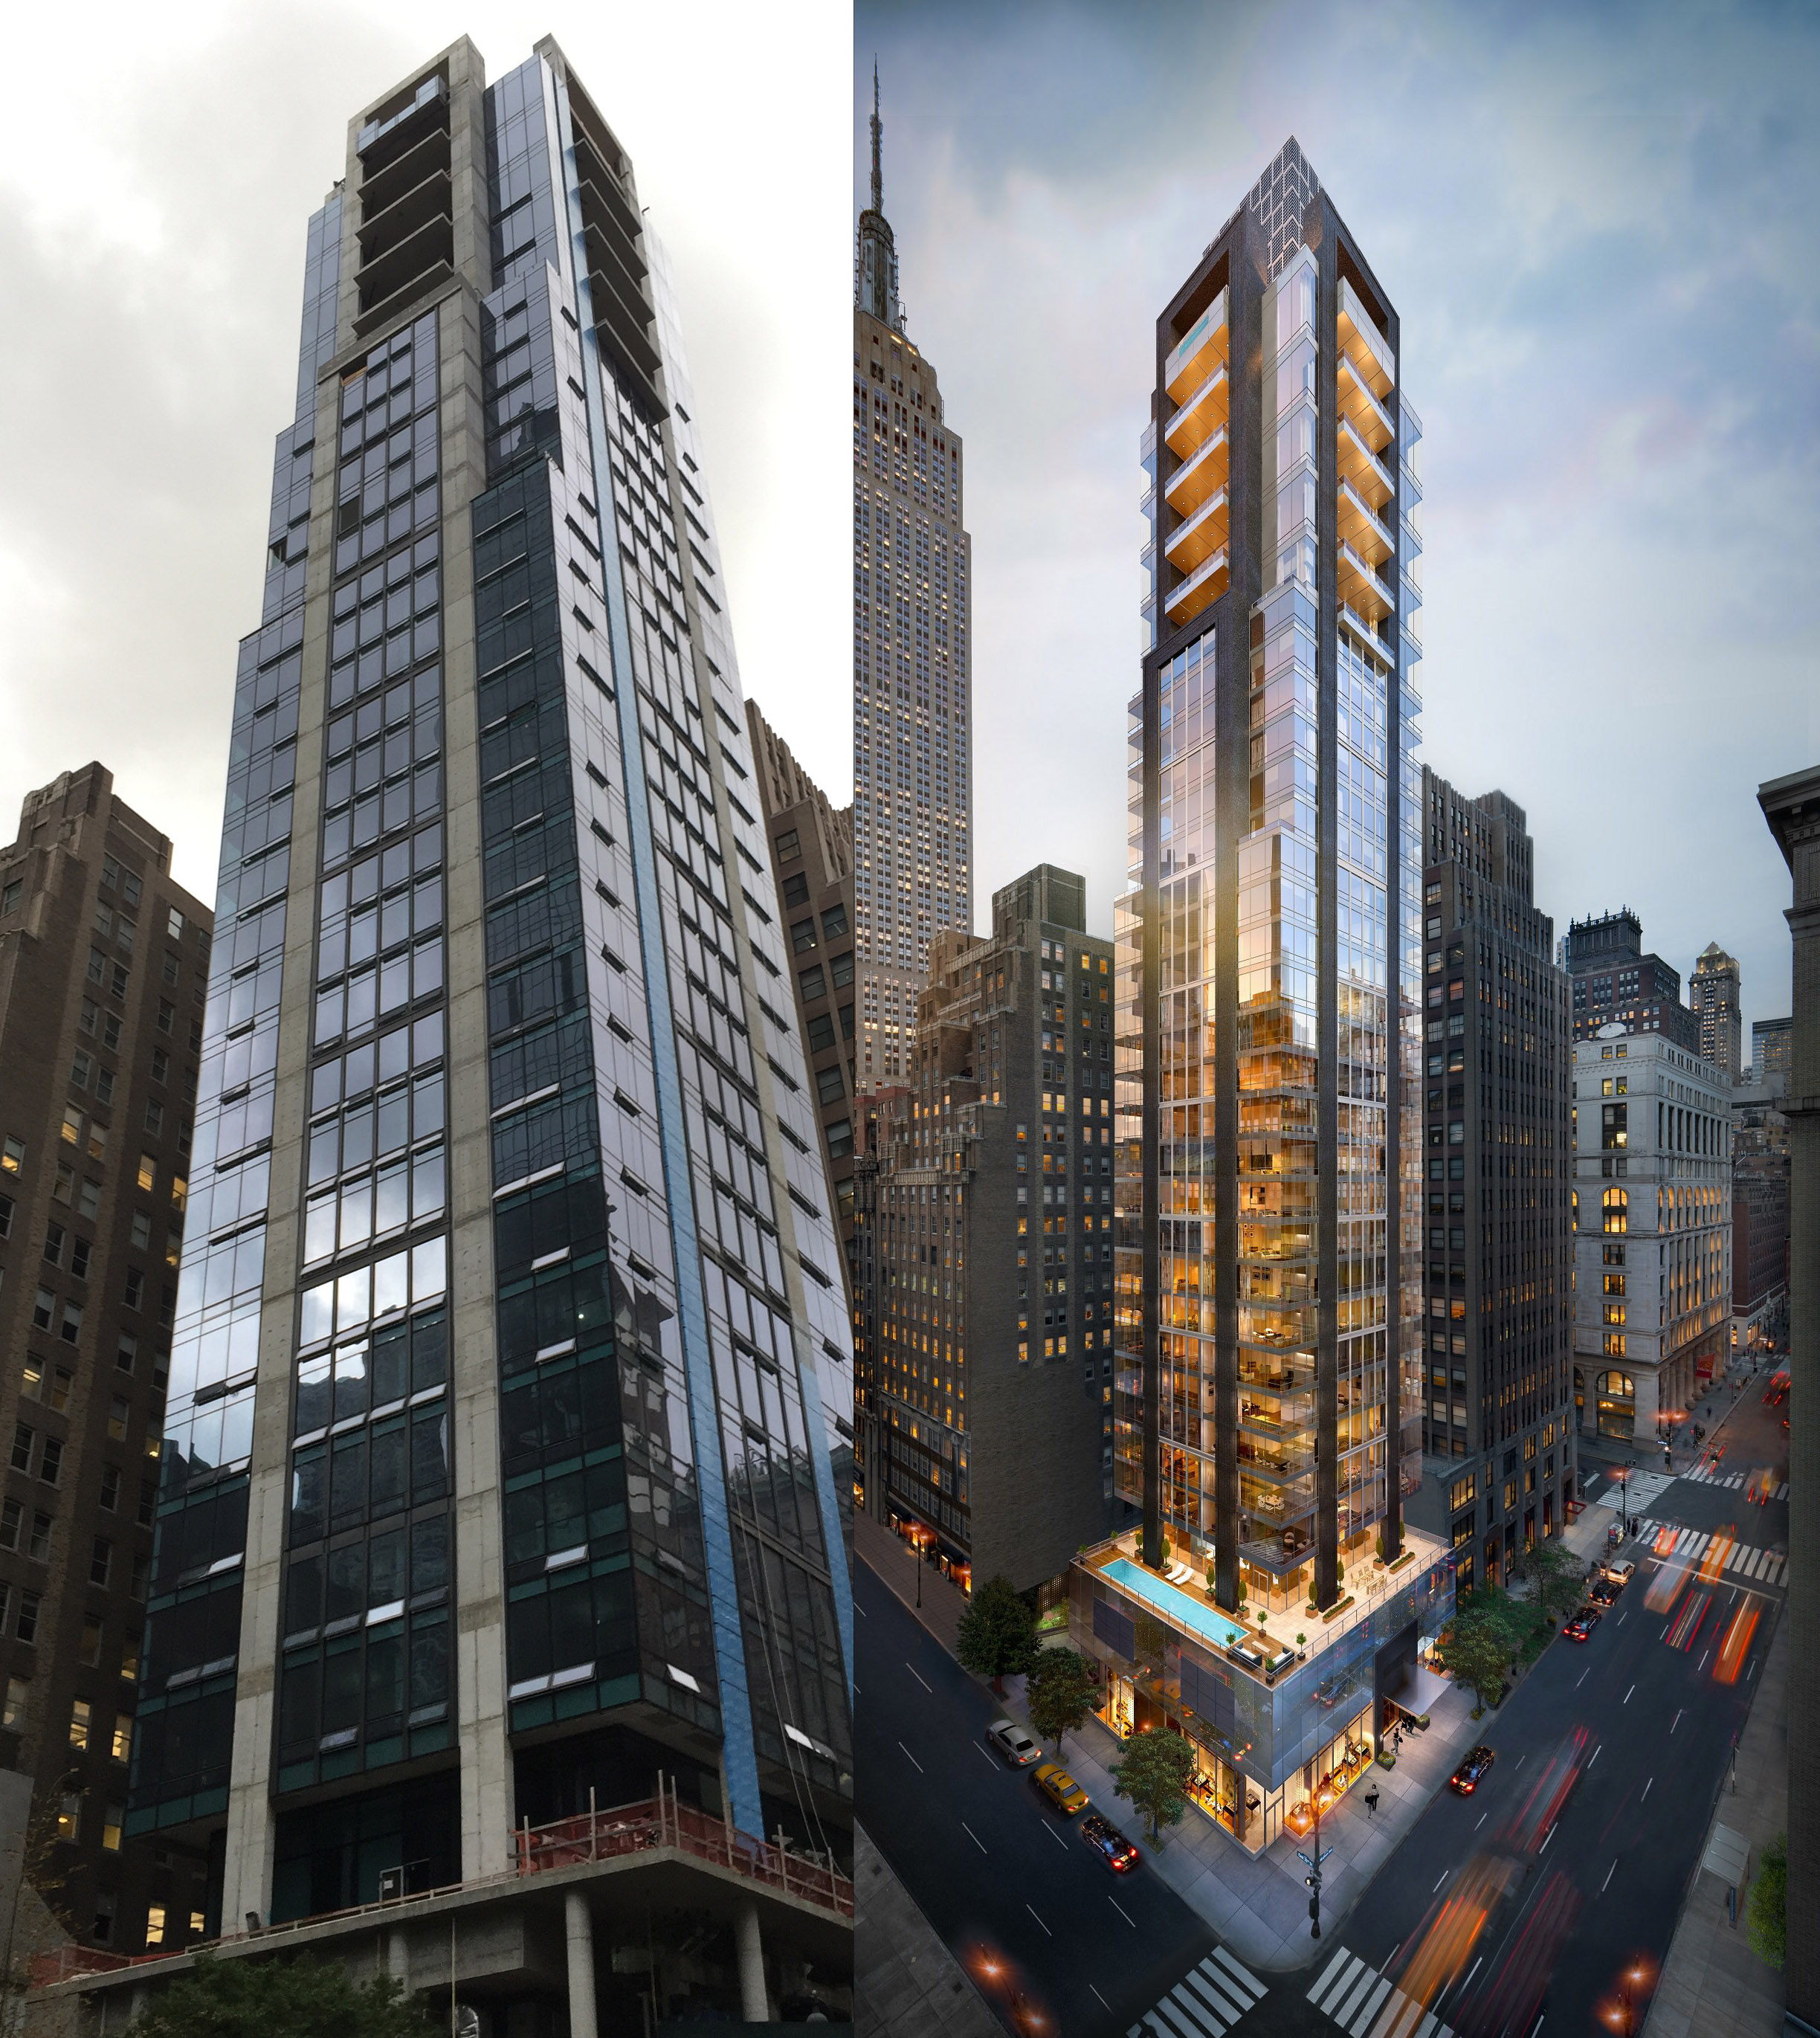 172 Madison Avenue, current photo and rendering. Photo by robertwalpole via YIMBY Forums